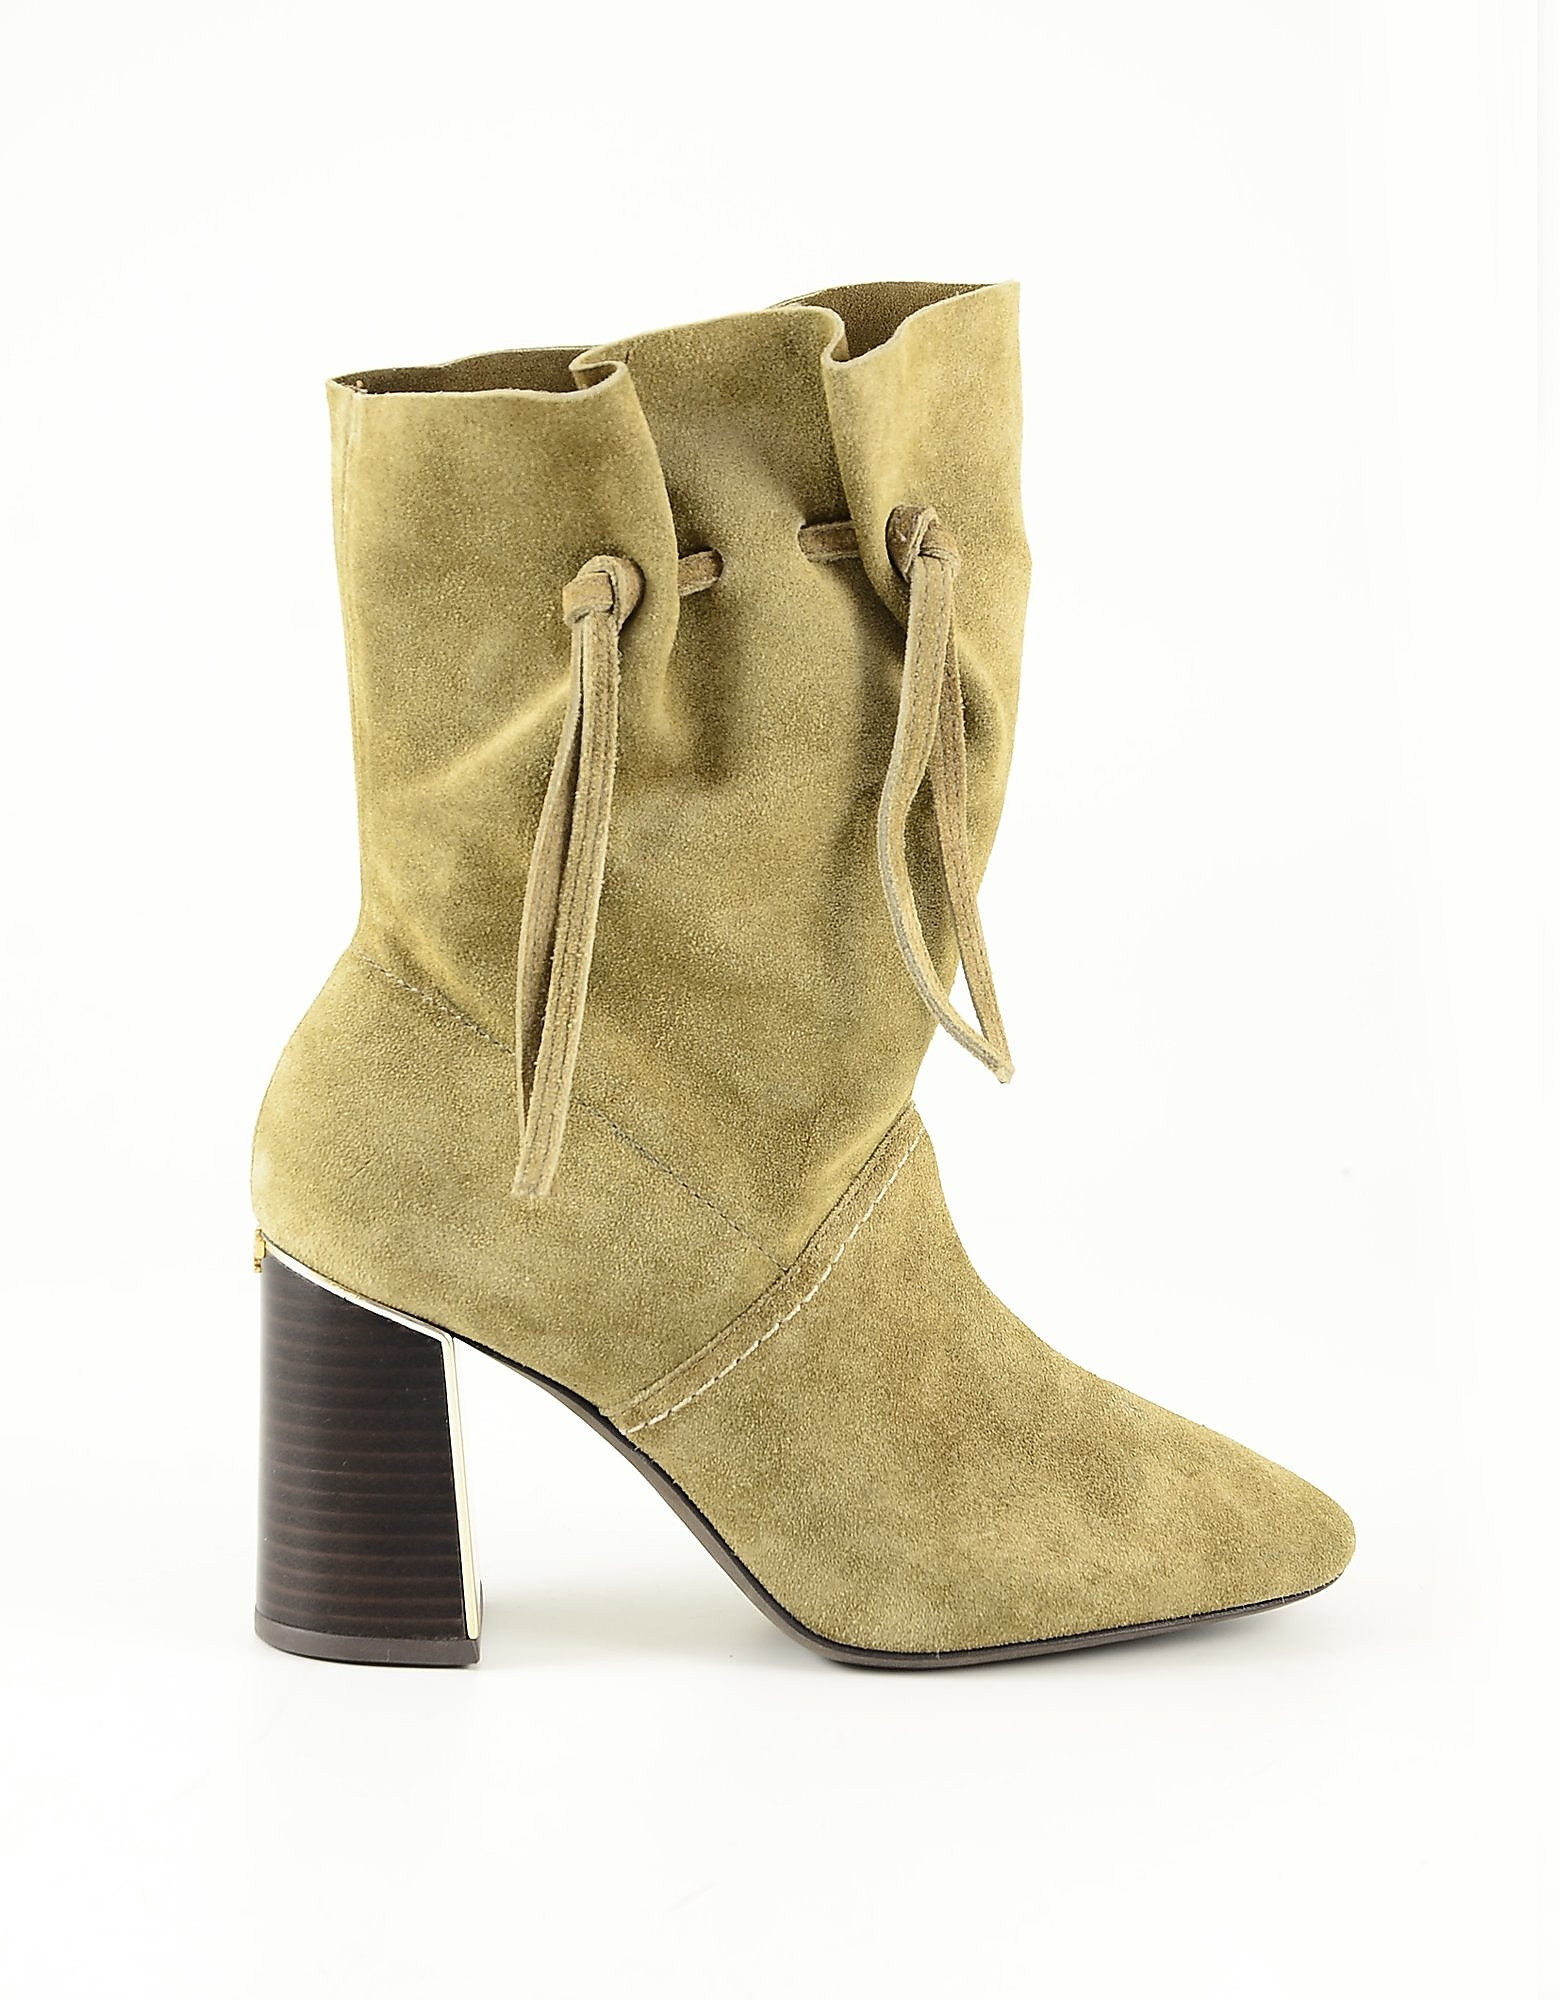 Tory Burch Designer Shoes, Sand Suede Women's Boots